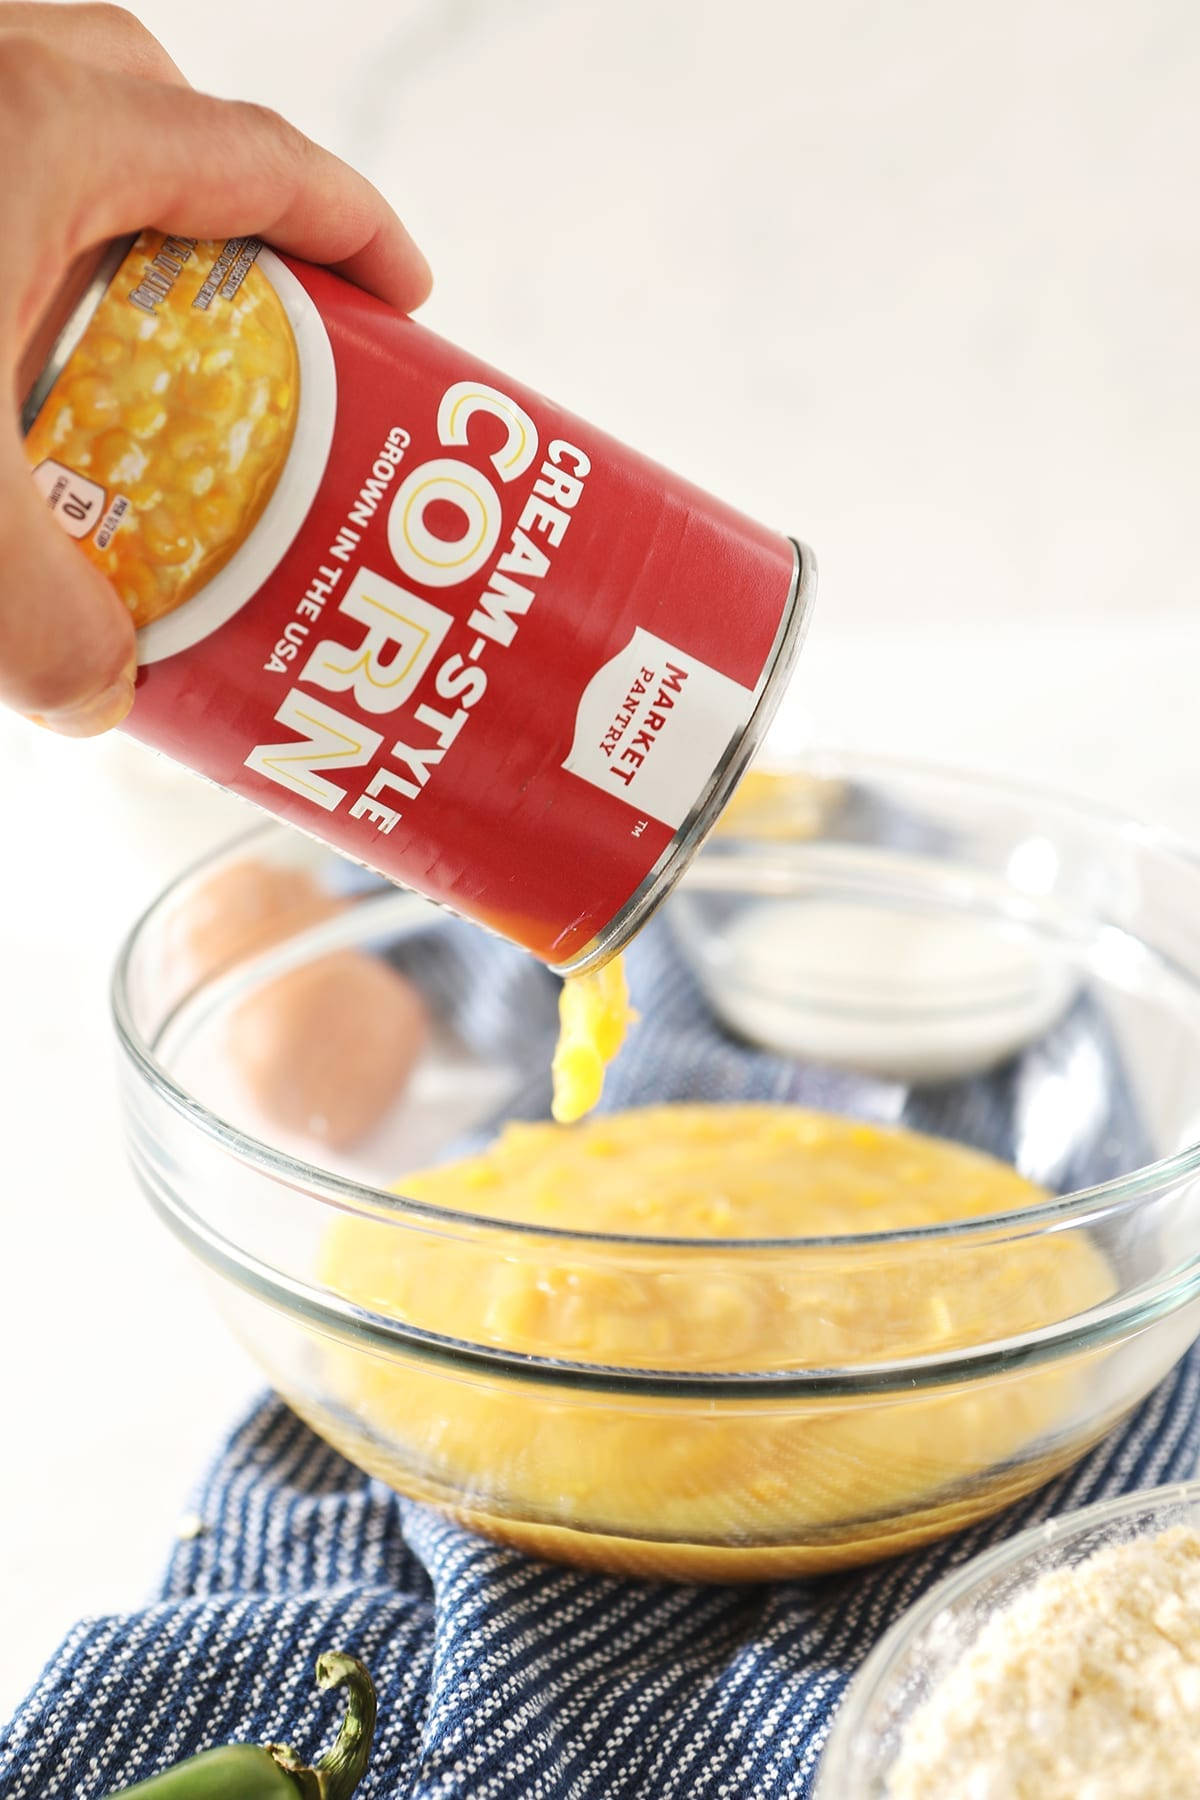 A can of creamed corn pours into a glass bowl